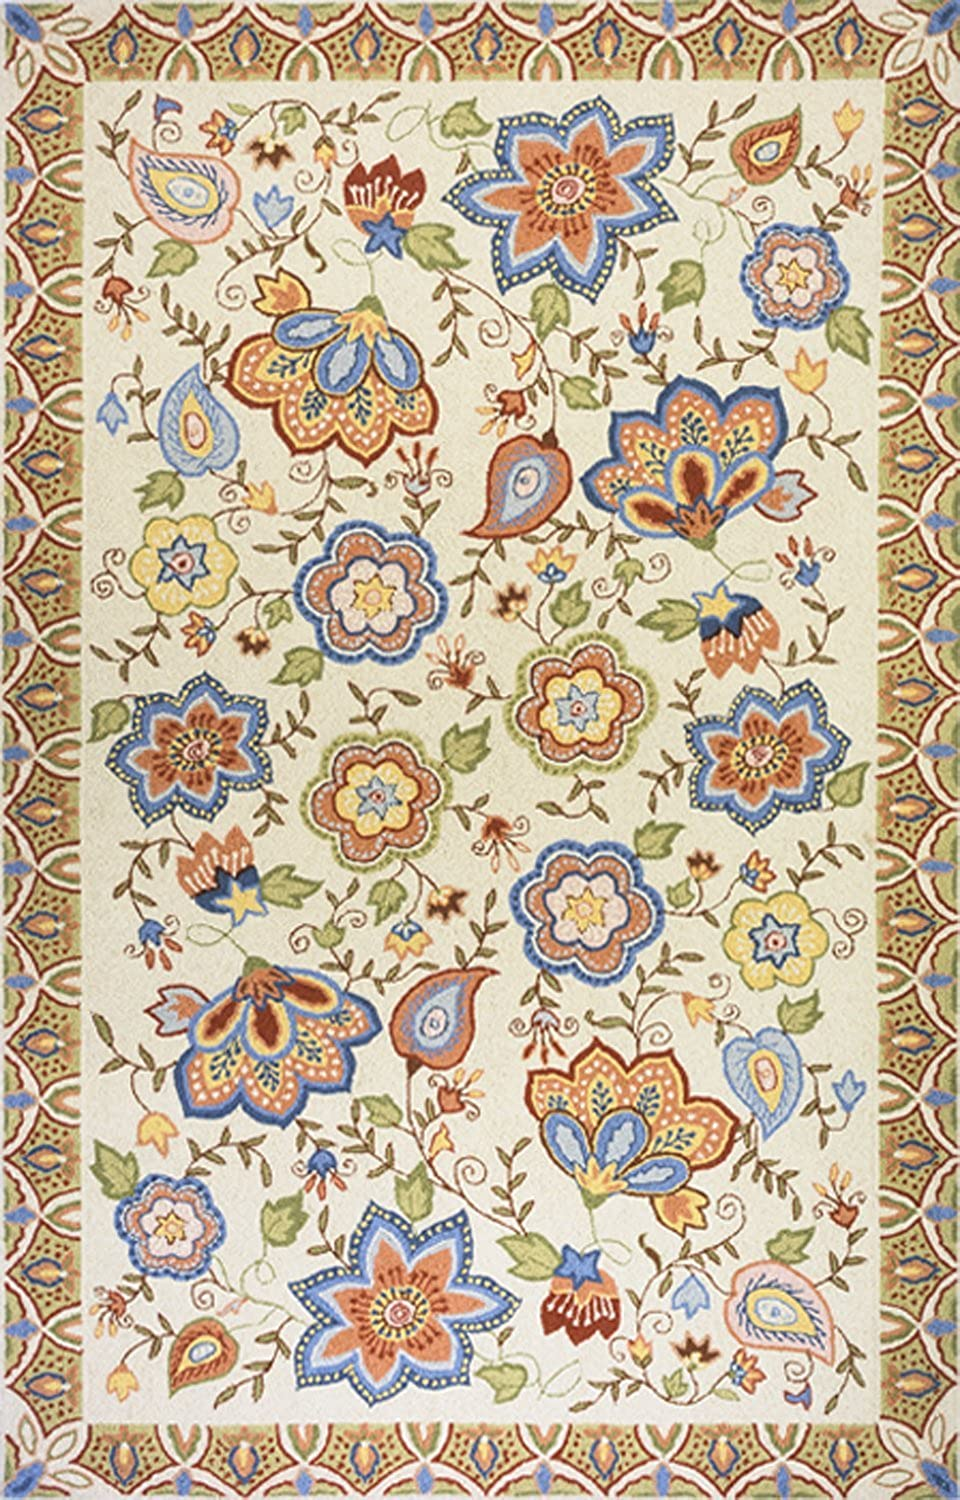 Momeni Rugs SPENCSP-22BGE2030 Spencer Collection, 100% Wool Hand Hooked Traditional Area Rug, 2' x 3', Beige